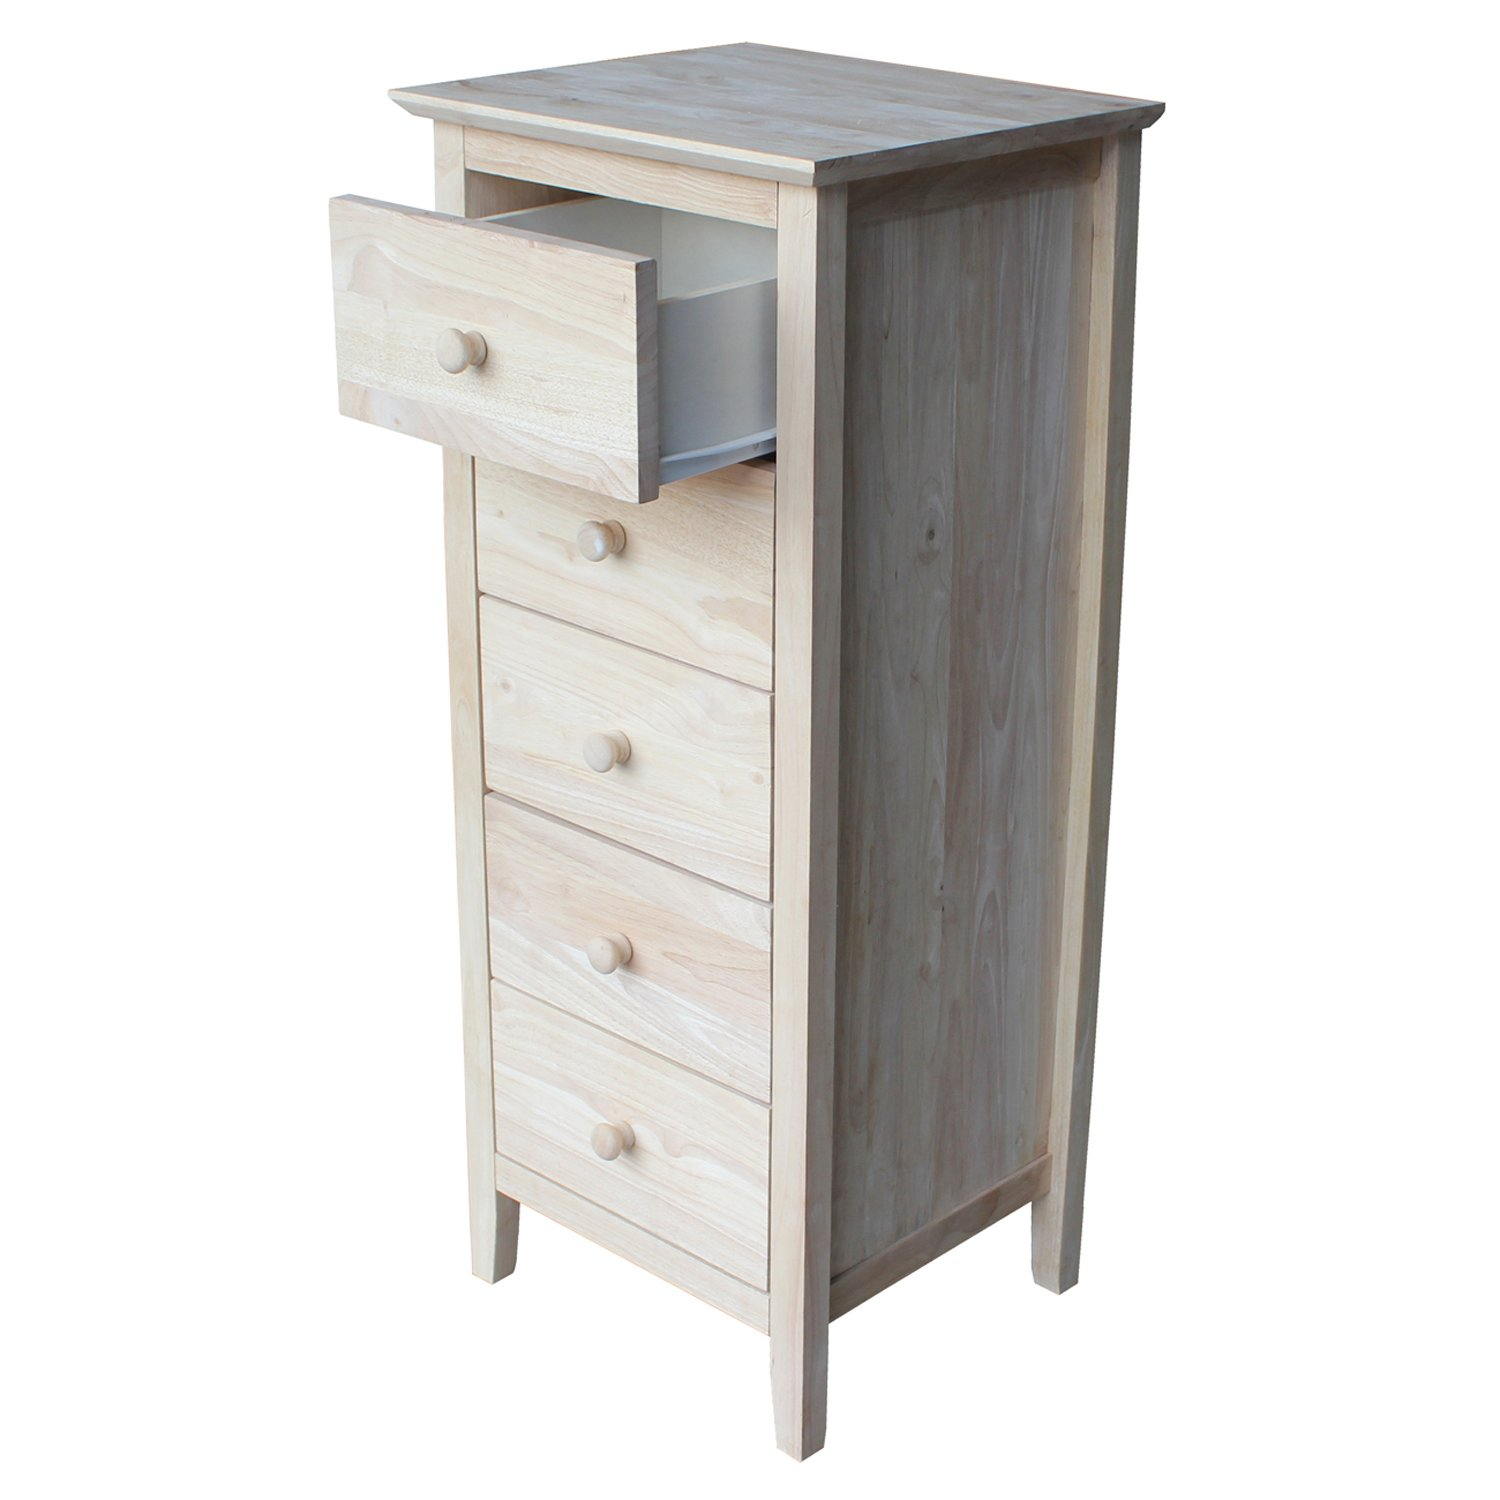 International Concepts Lingerie Chest with 5 Drawers, Unfinished BD-8015